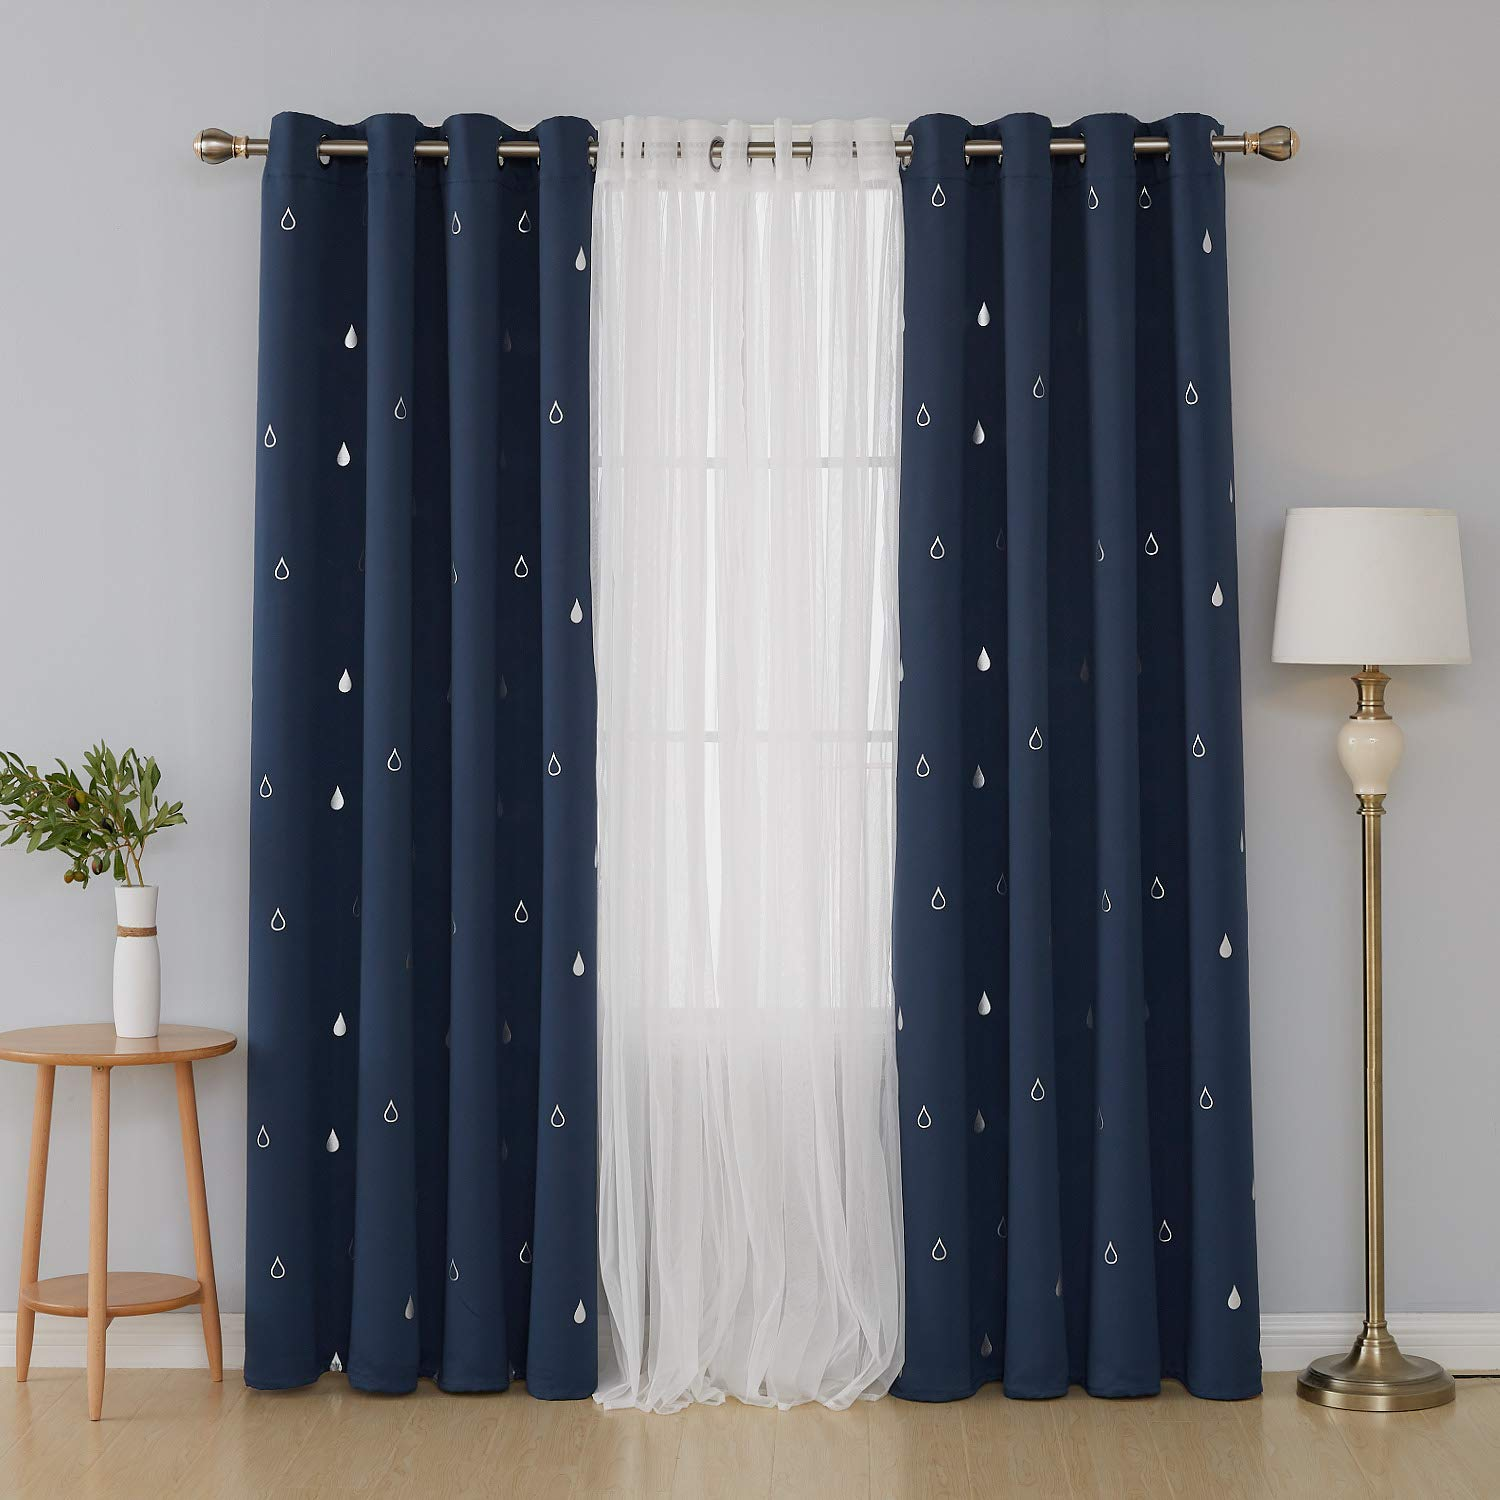 2019 Ready made solid polyester hotel quality blackout curtains for living room & bedroom